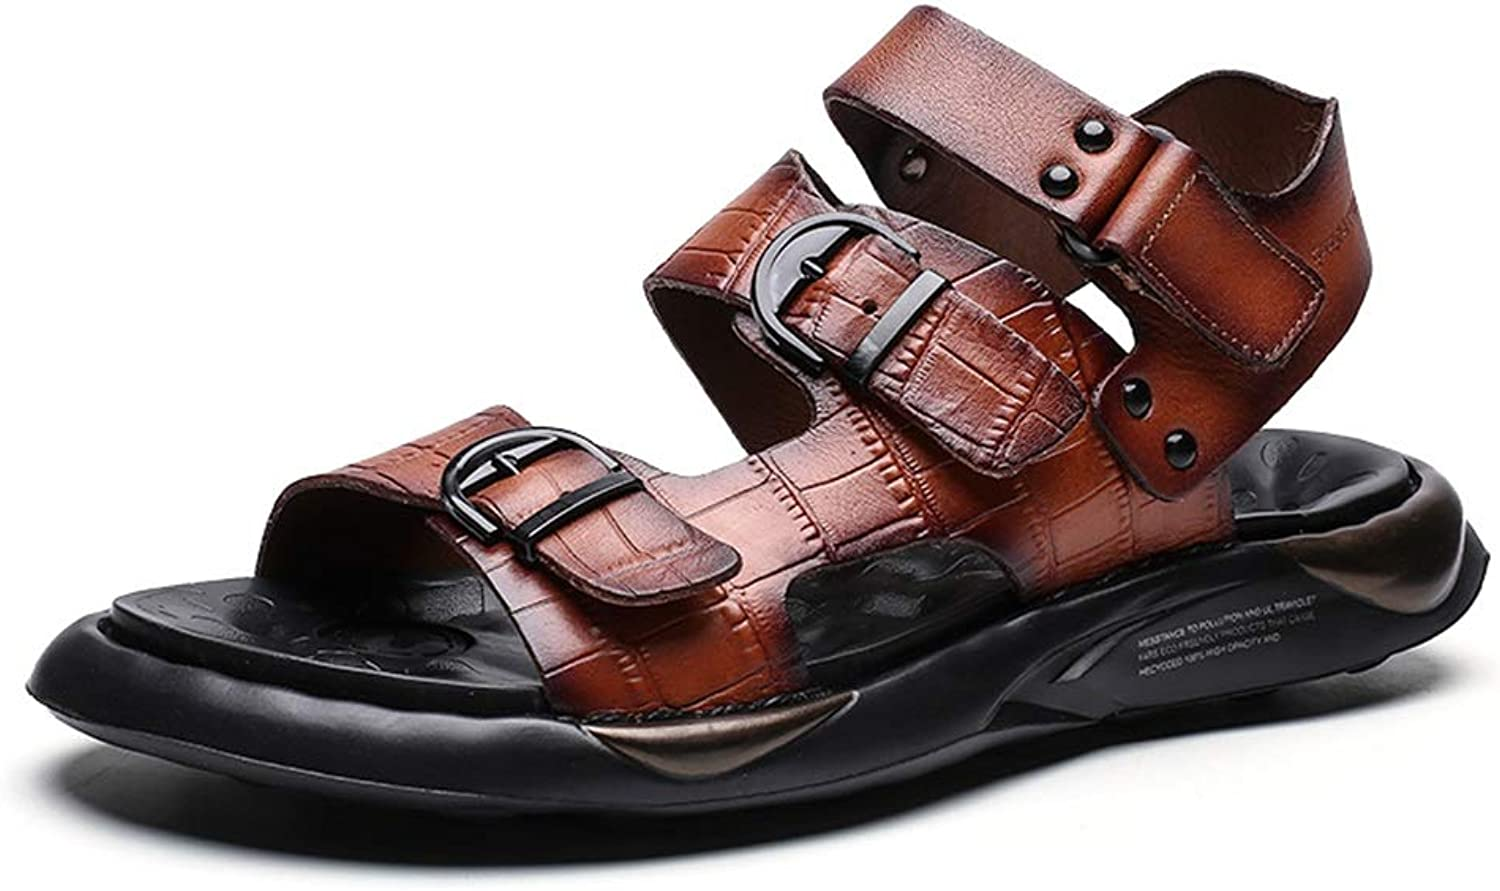 Sandals For Men Casual shoes Slip On OX Leather wear-resisting Toe Hook&Loop Strap Fixed by Revit With Buckledecro Cricket shoes (color   Brown, Size   8 UK)